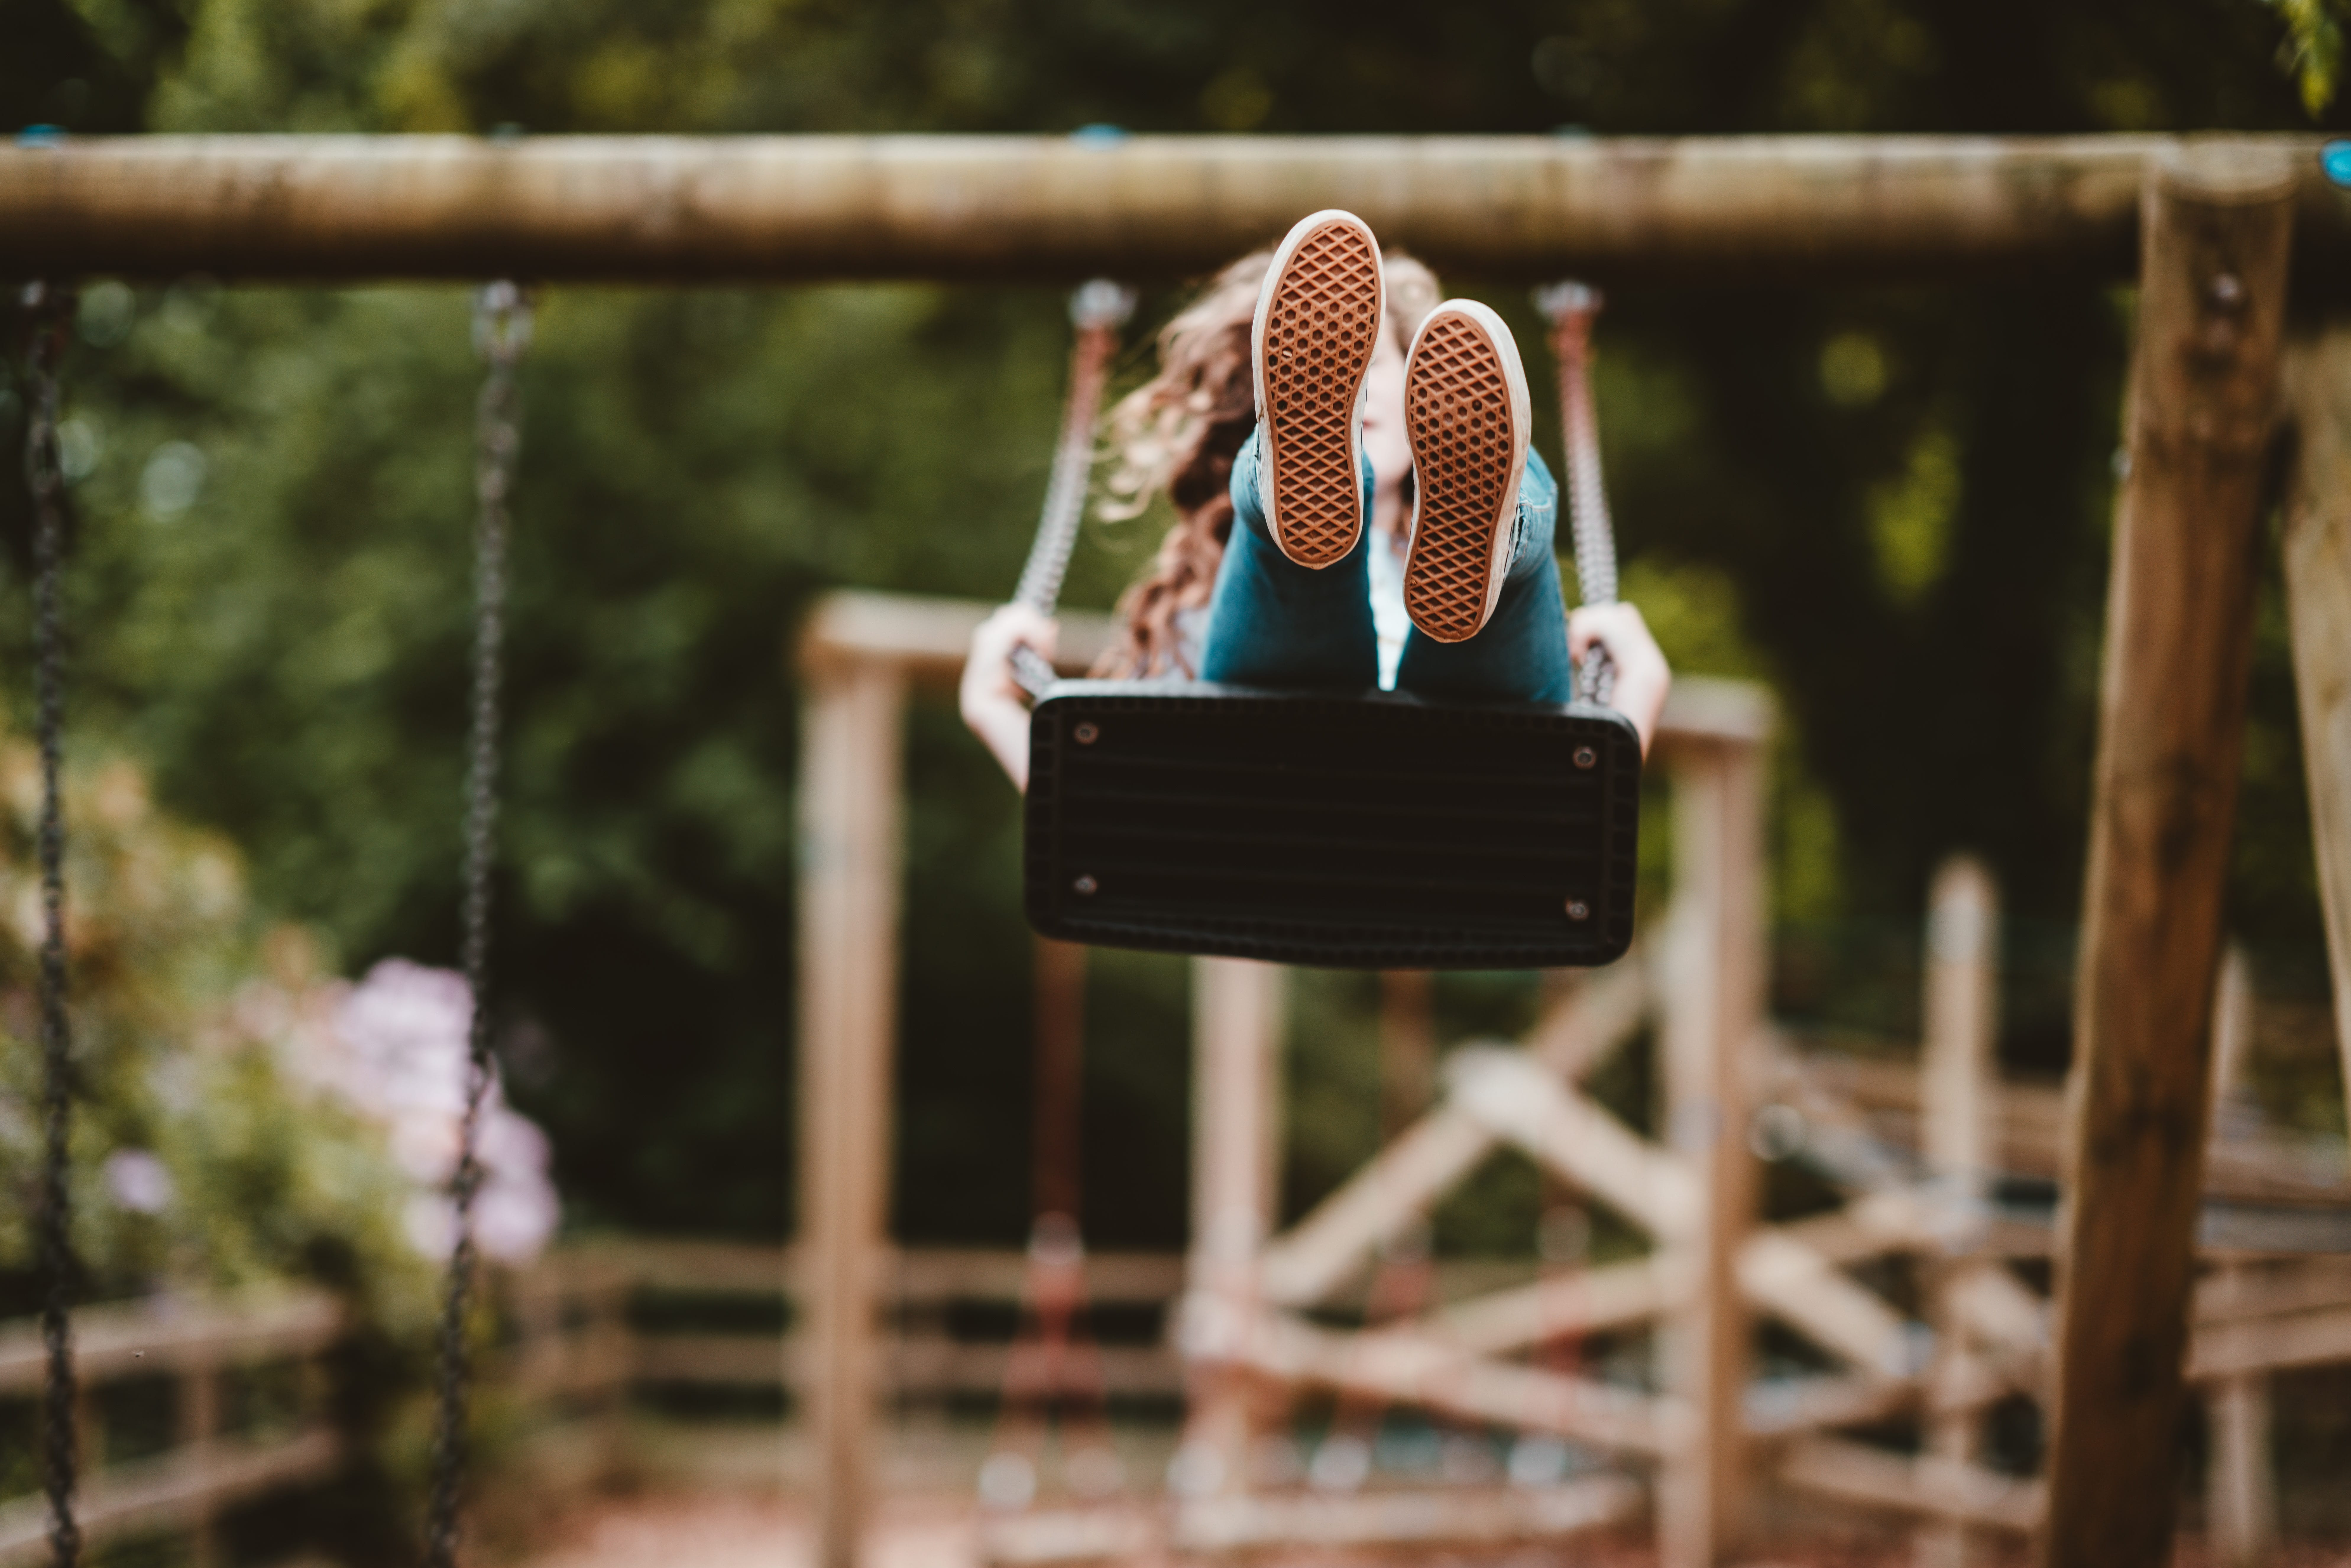 Child in mid-air swinging on a swing with feet pointing at the camera